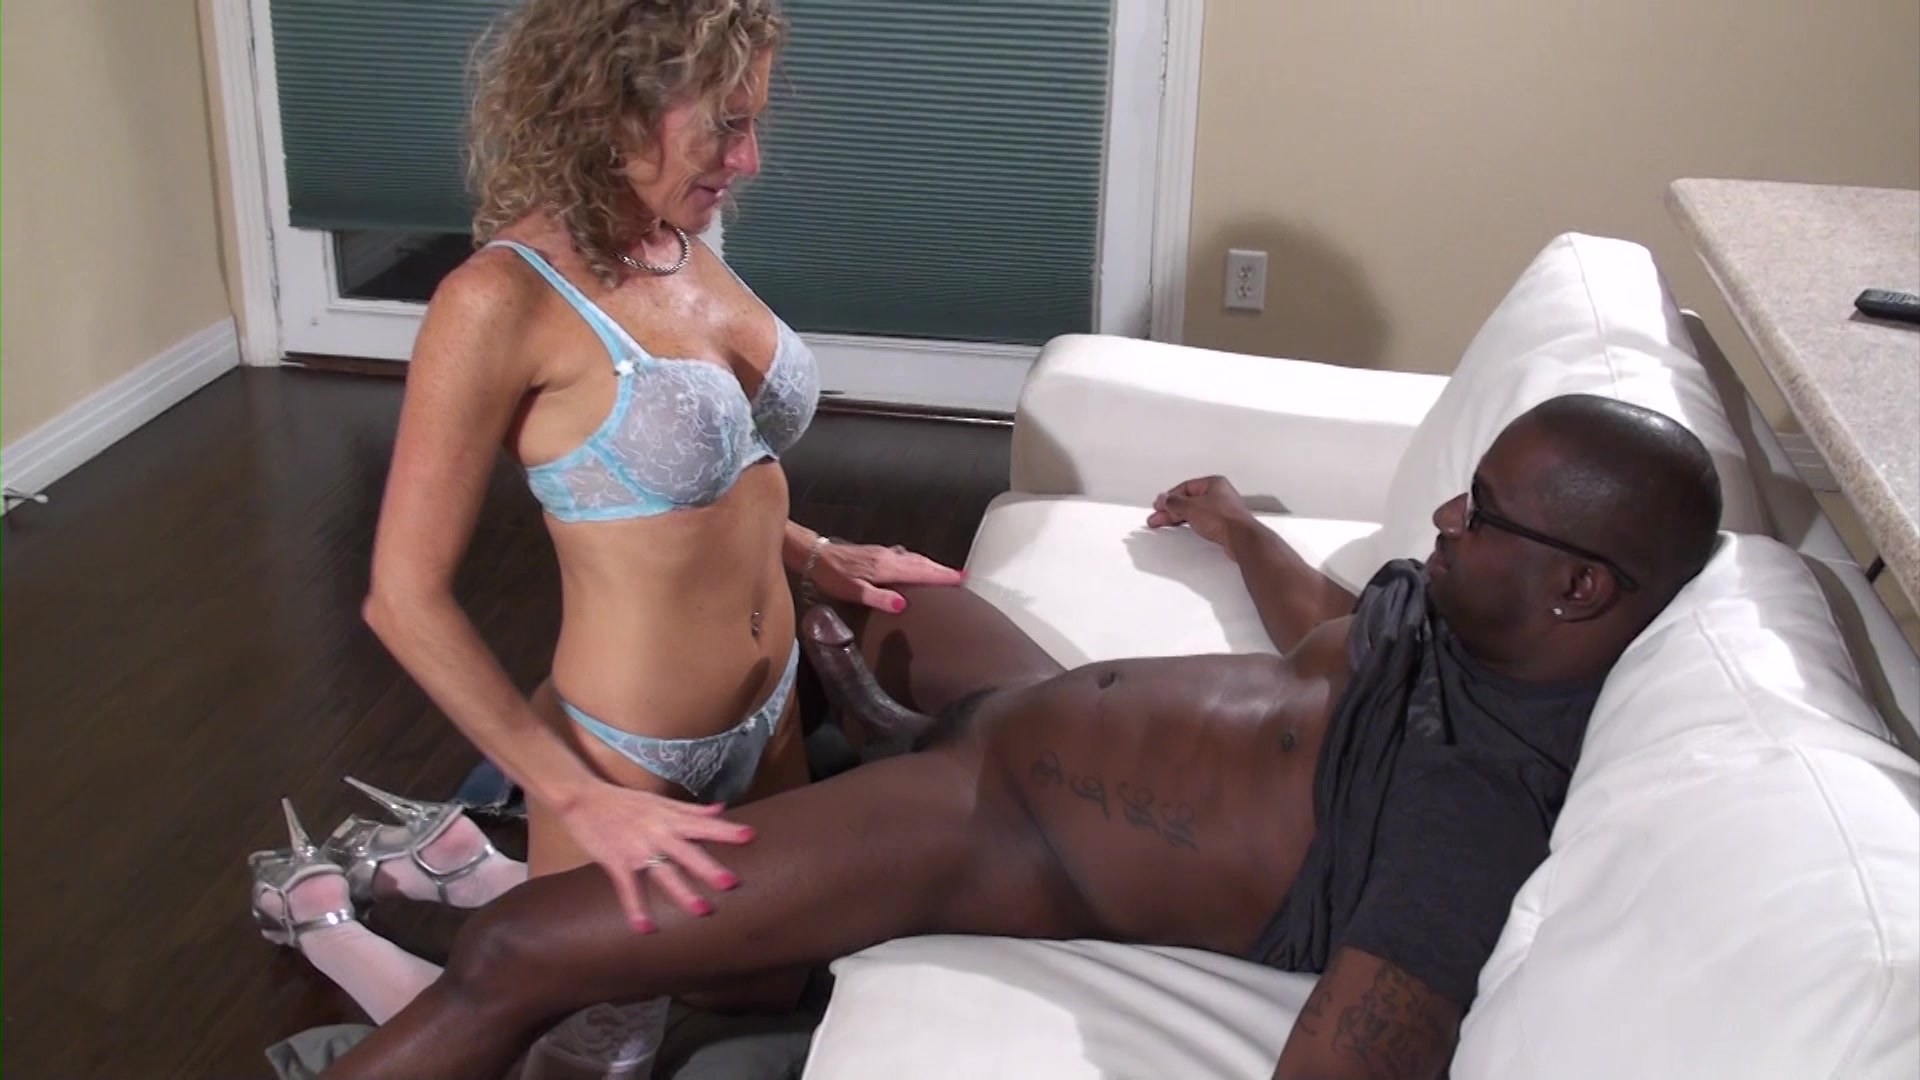 Wife Cheating Rendezvous Streaming Or Download Video On -3169